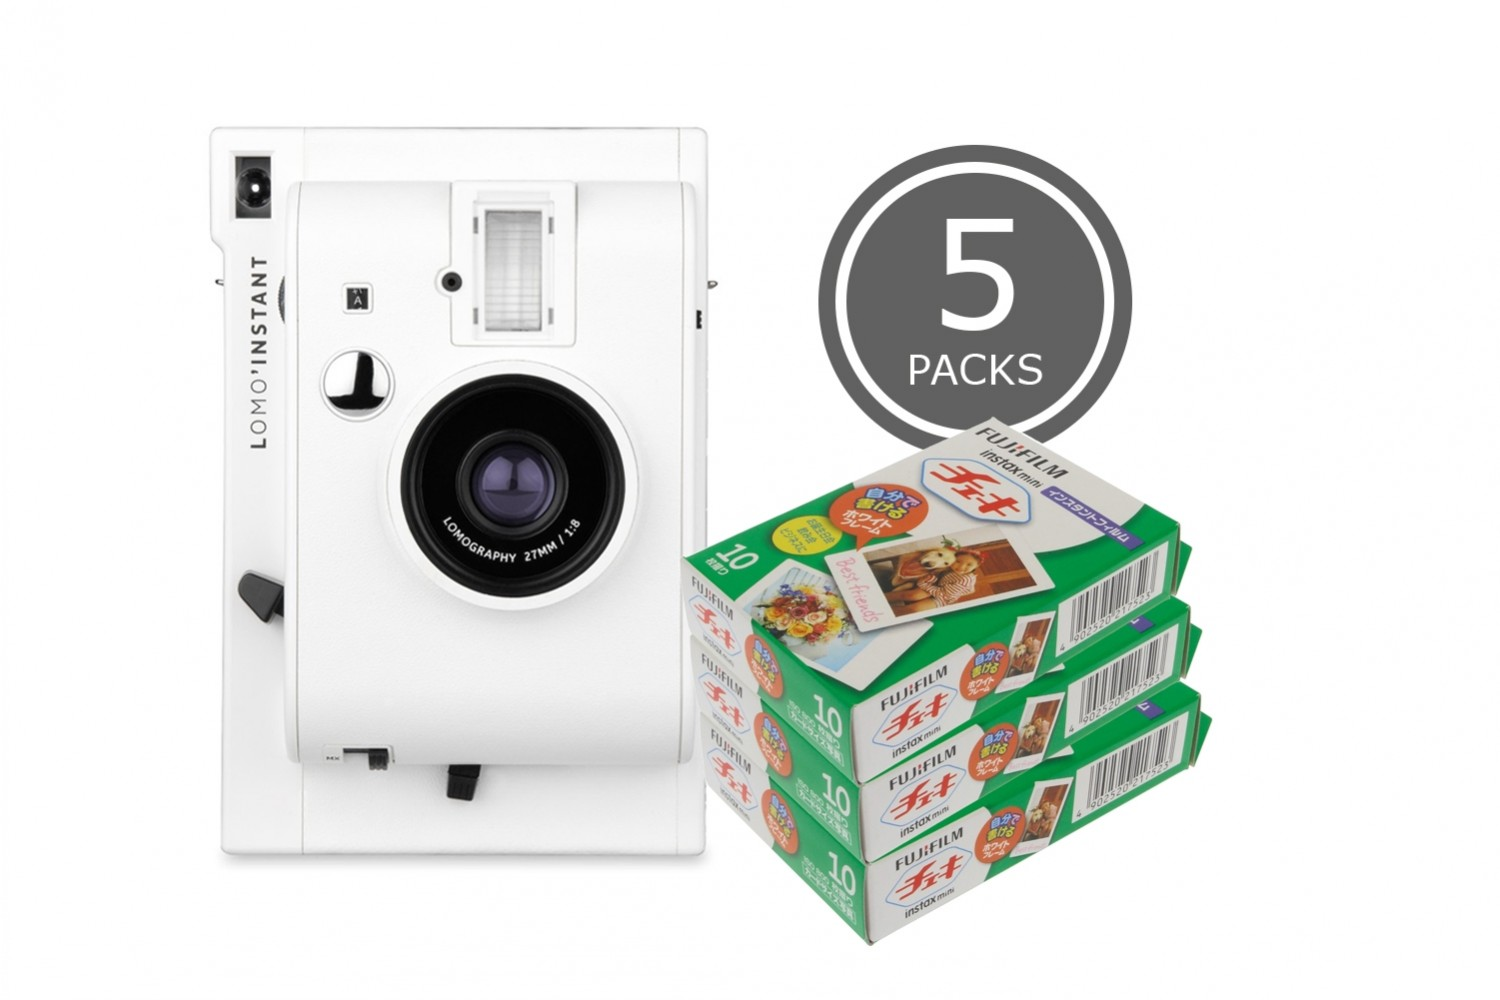 Appareil Lomo'Instant White & 5 packs de Fuji Instax Mini